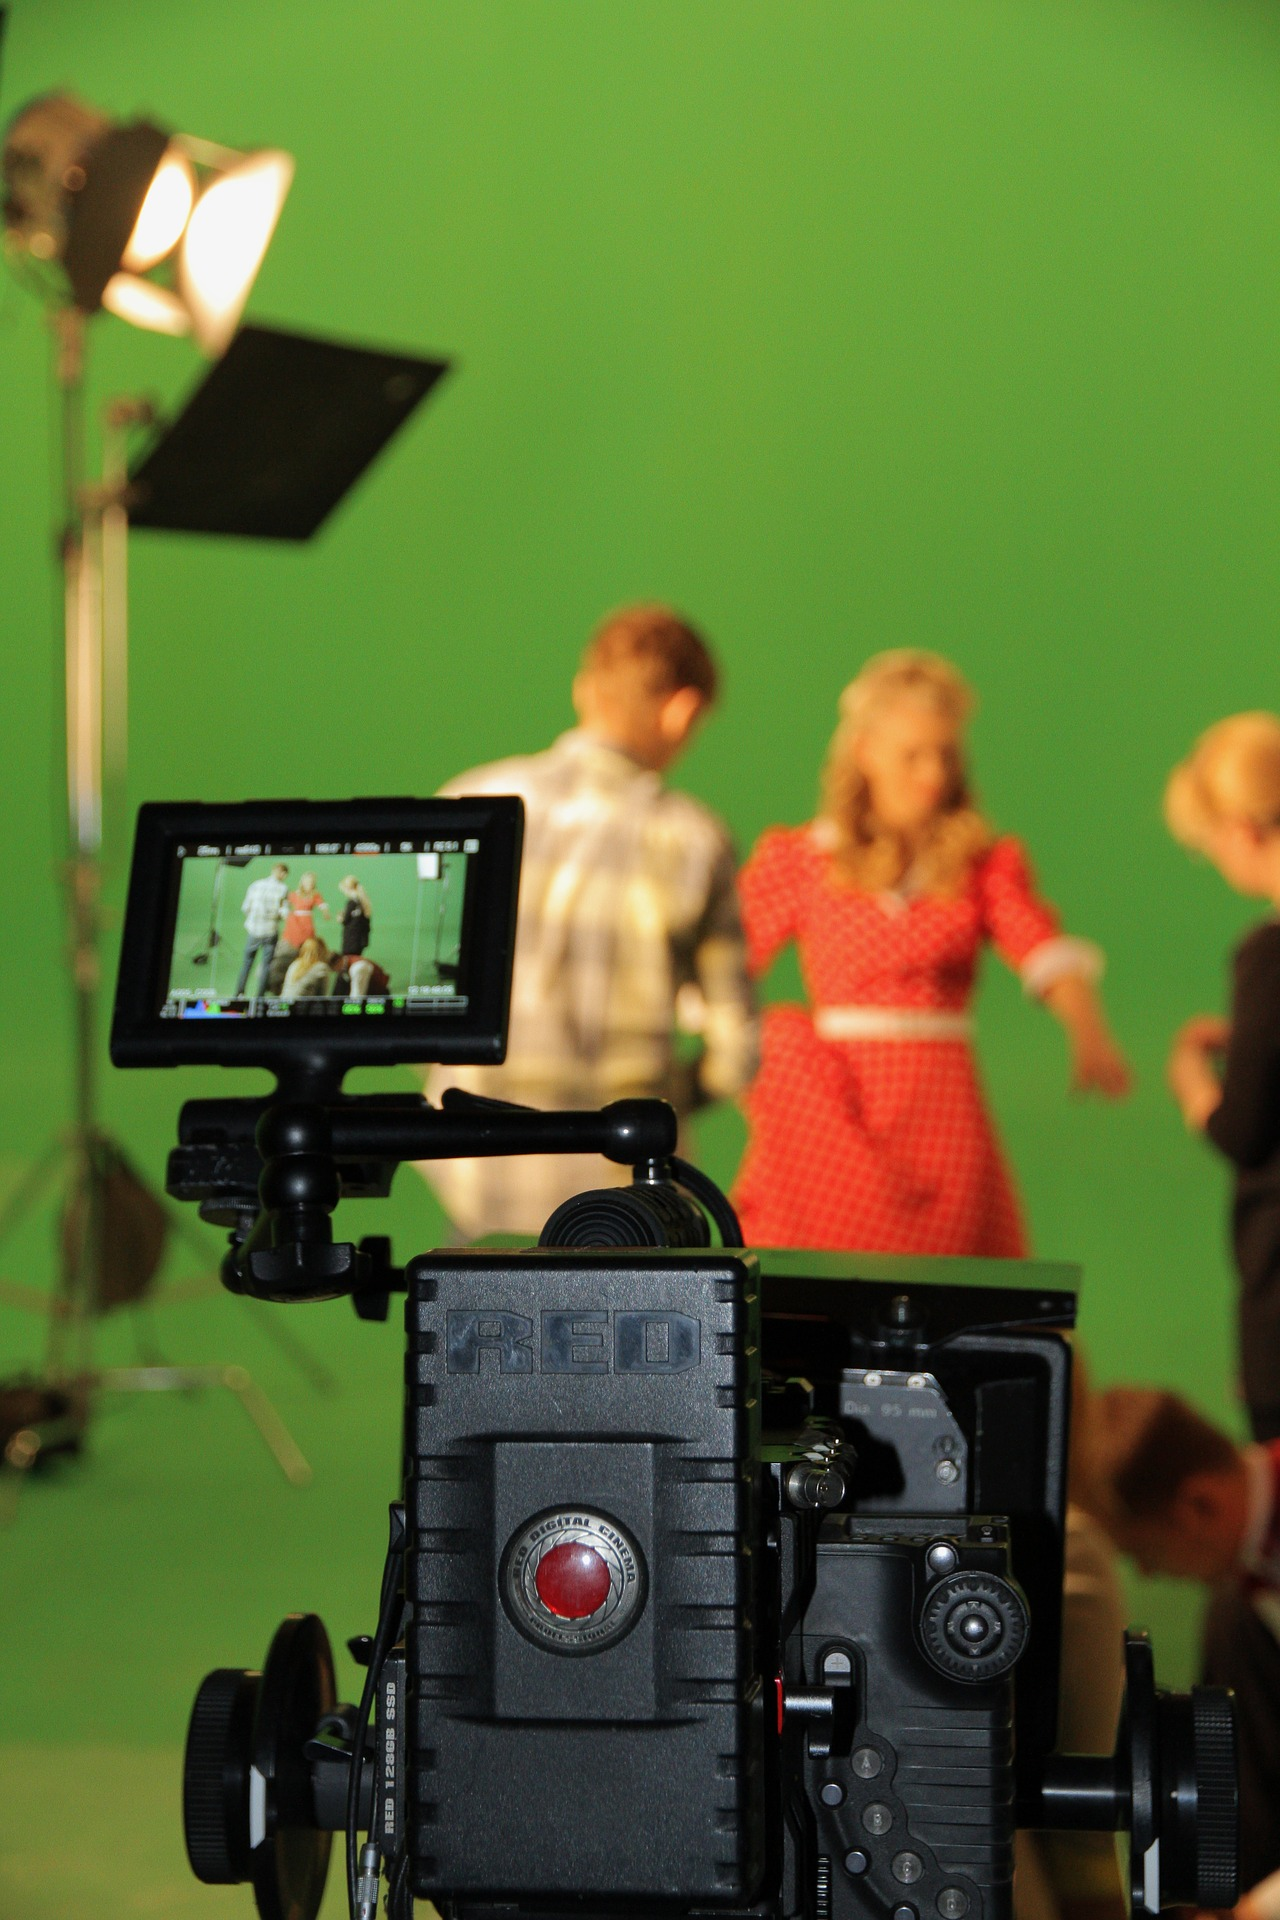 filming with a green screen